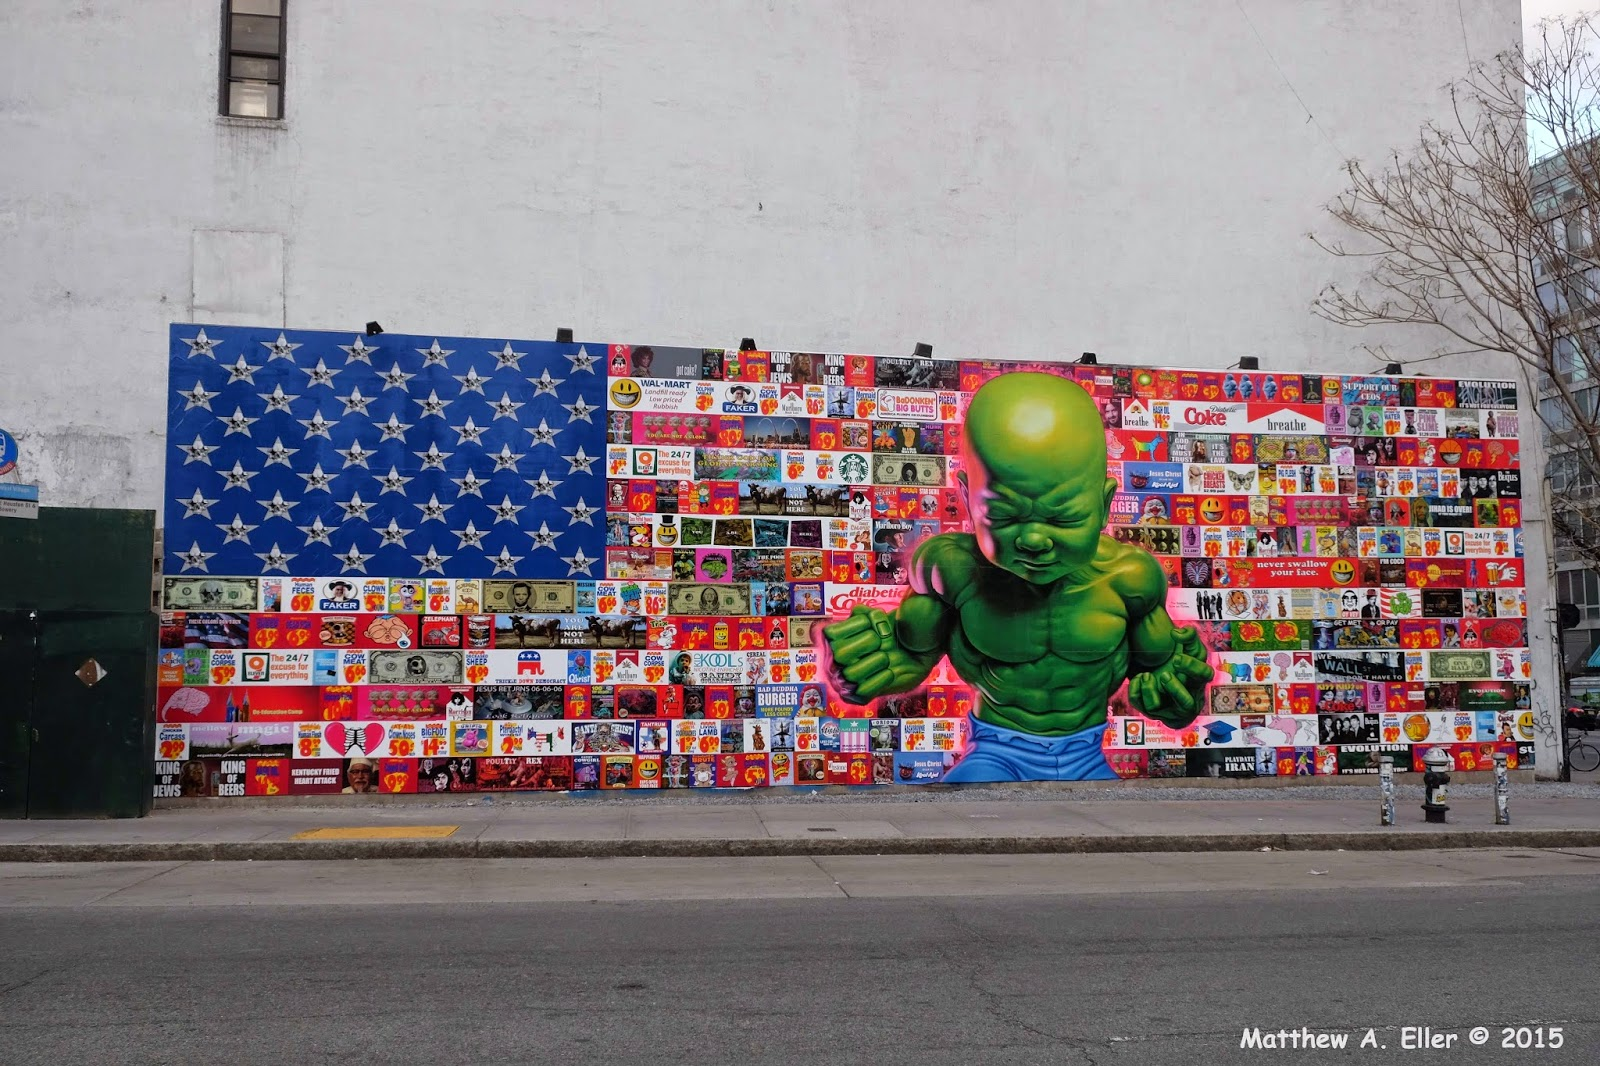 Best Ron English unveils a new piece at The Bowery Mural in New York City